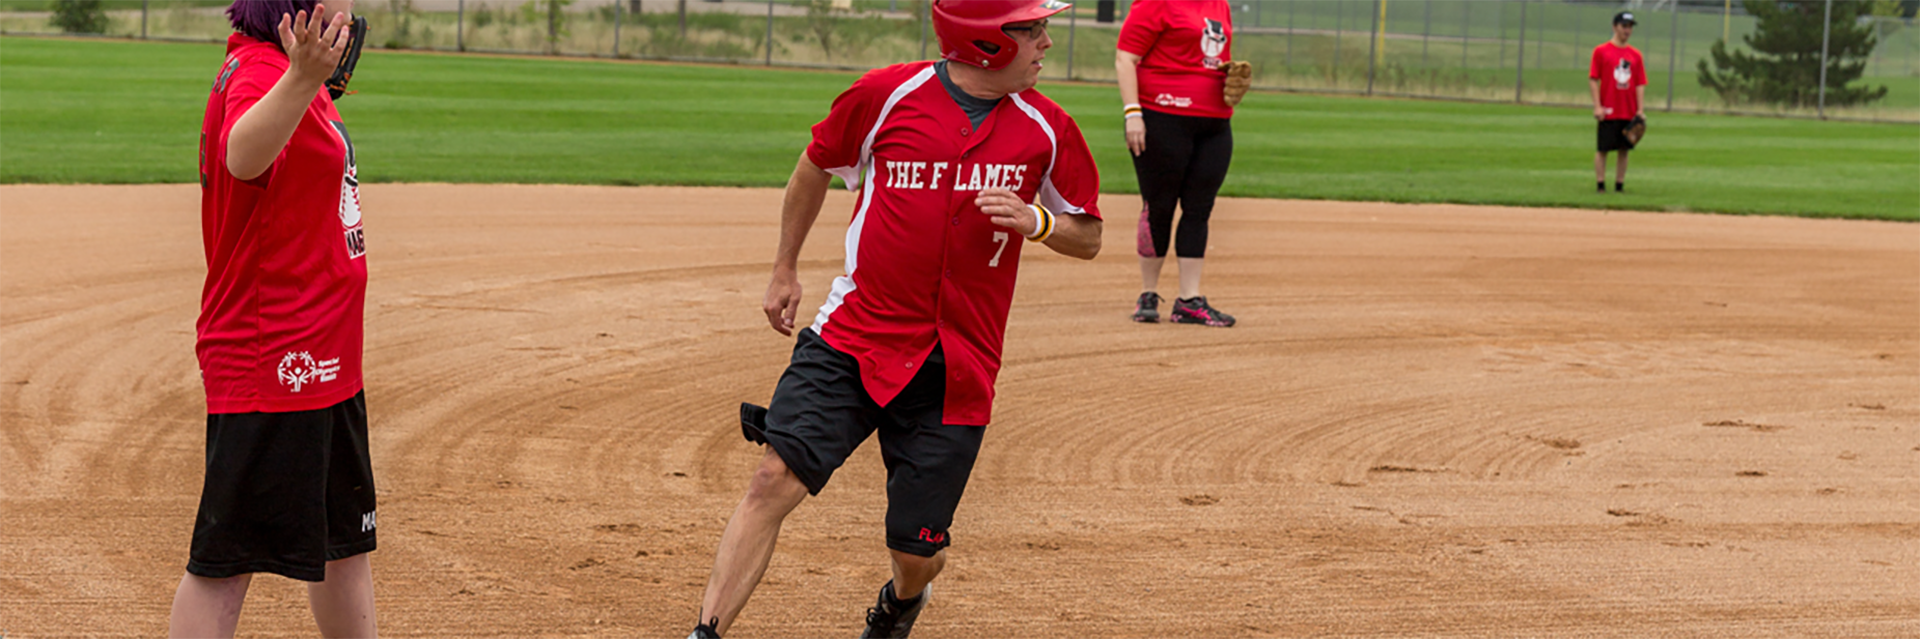 Special Olympics Minnesota softball athlete running bases during game with coach and other athletes in background